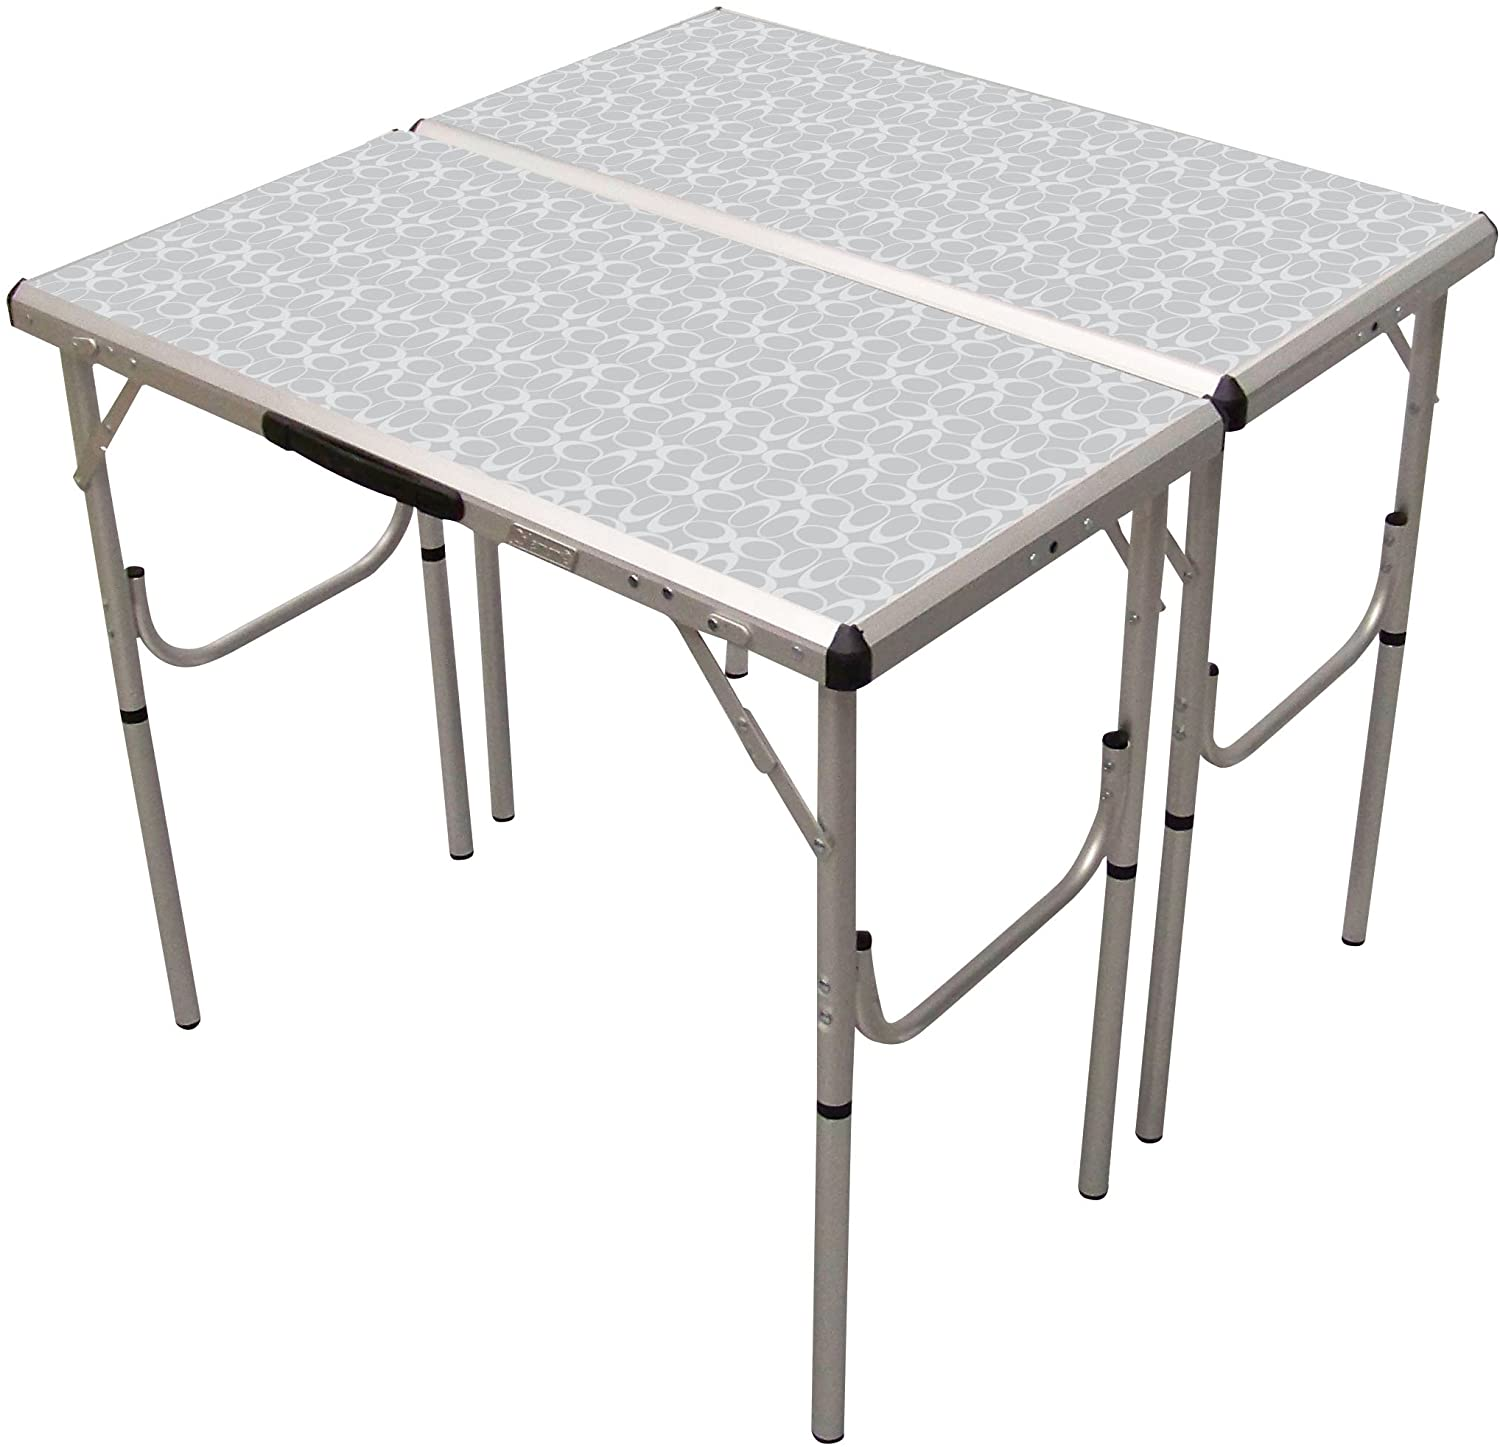 Coleman Folding Table 4-in-1 Pack-Away Camping Table